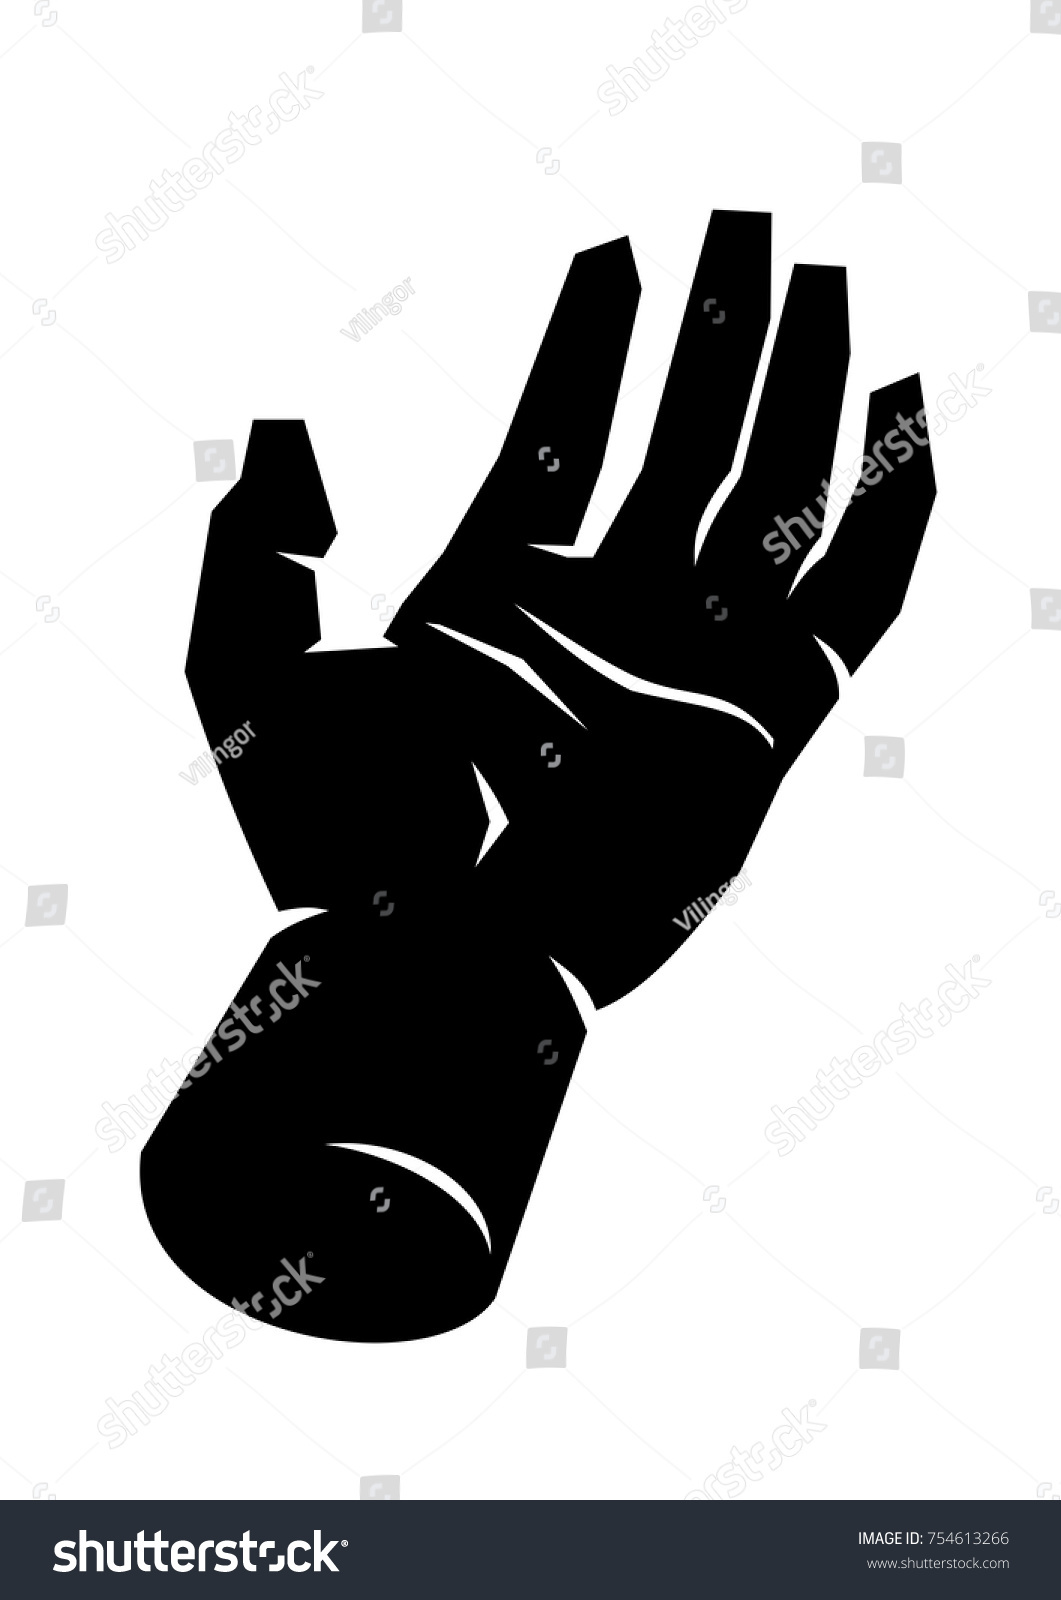 Black silhouette male open hand palm stock vector 754613266 black silhouette of a male open hand palm up fingers extended white hand lines buycottarizona